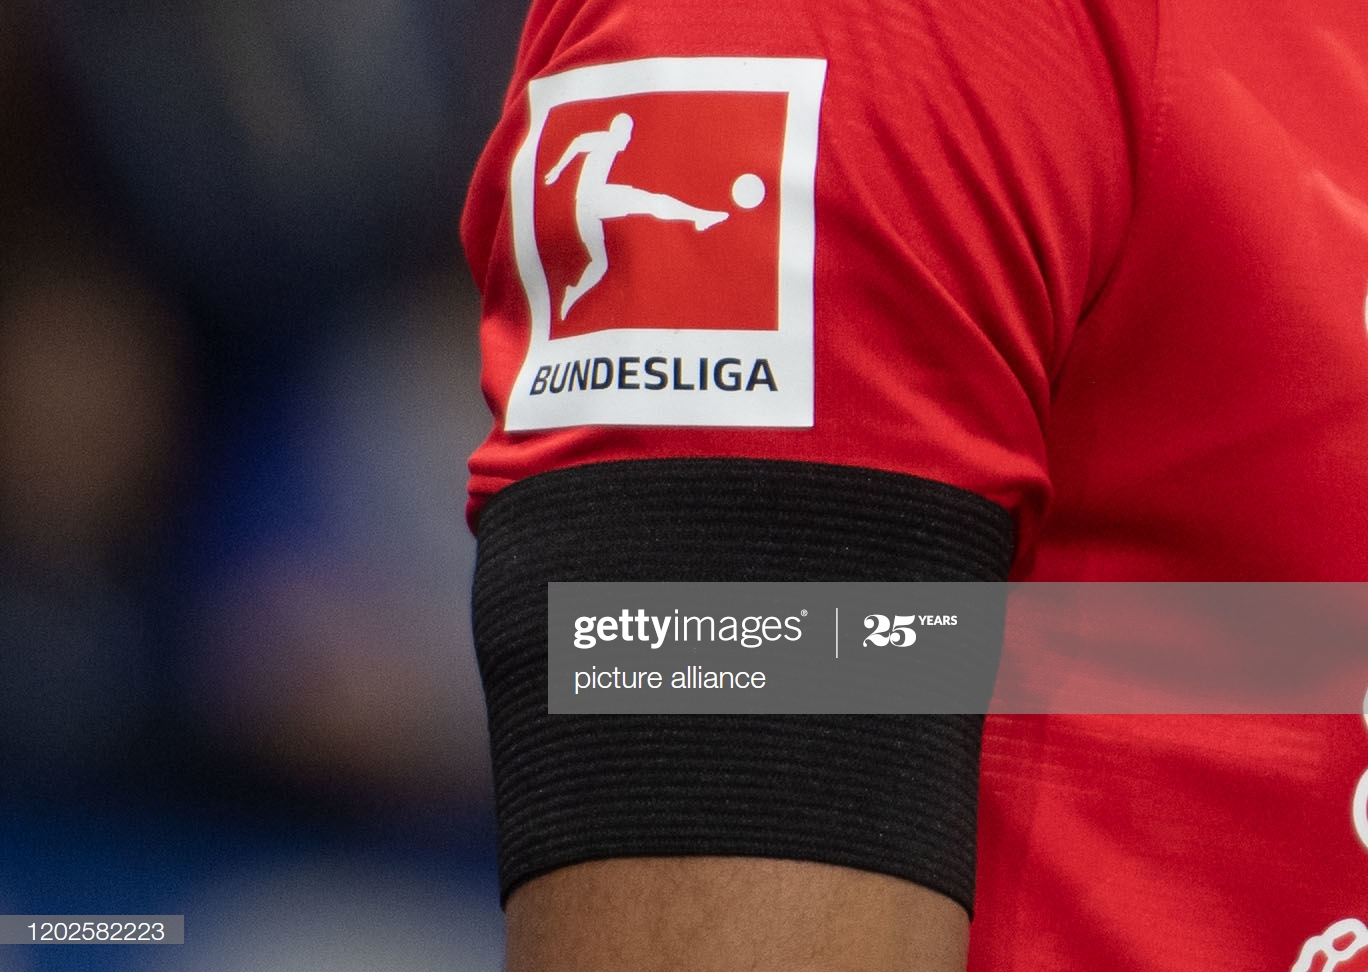 22 February 2020, North Rhine-Westphalia, Gelsenkirchen: Football: Bundesliga, FC Schalke 04 - RB Leipzig, 23rd matchday in the Veltins Arena: A player from Leipzig wears black ribbon. Photo: Bernd Thissen/dpa - IMPORTANT NOTE: In accordance with the regulations of the DFL Deutsche Fußball Liga and the DFB Deutscher Fußball-Bund, it is prohibited to exploit or have exploited in the stadium and/or from the game taken photographs in the form of sequence images and/or video-like photo series. (Photo by Bernd Thissen/picture alliance via Getty Images)